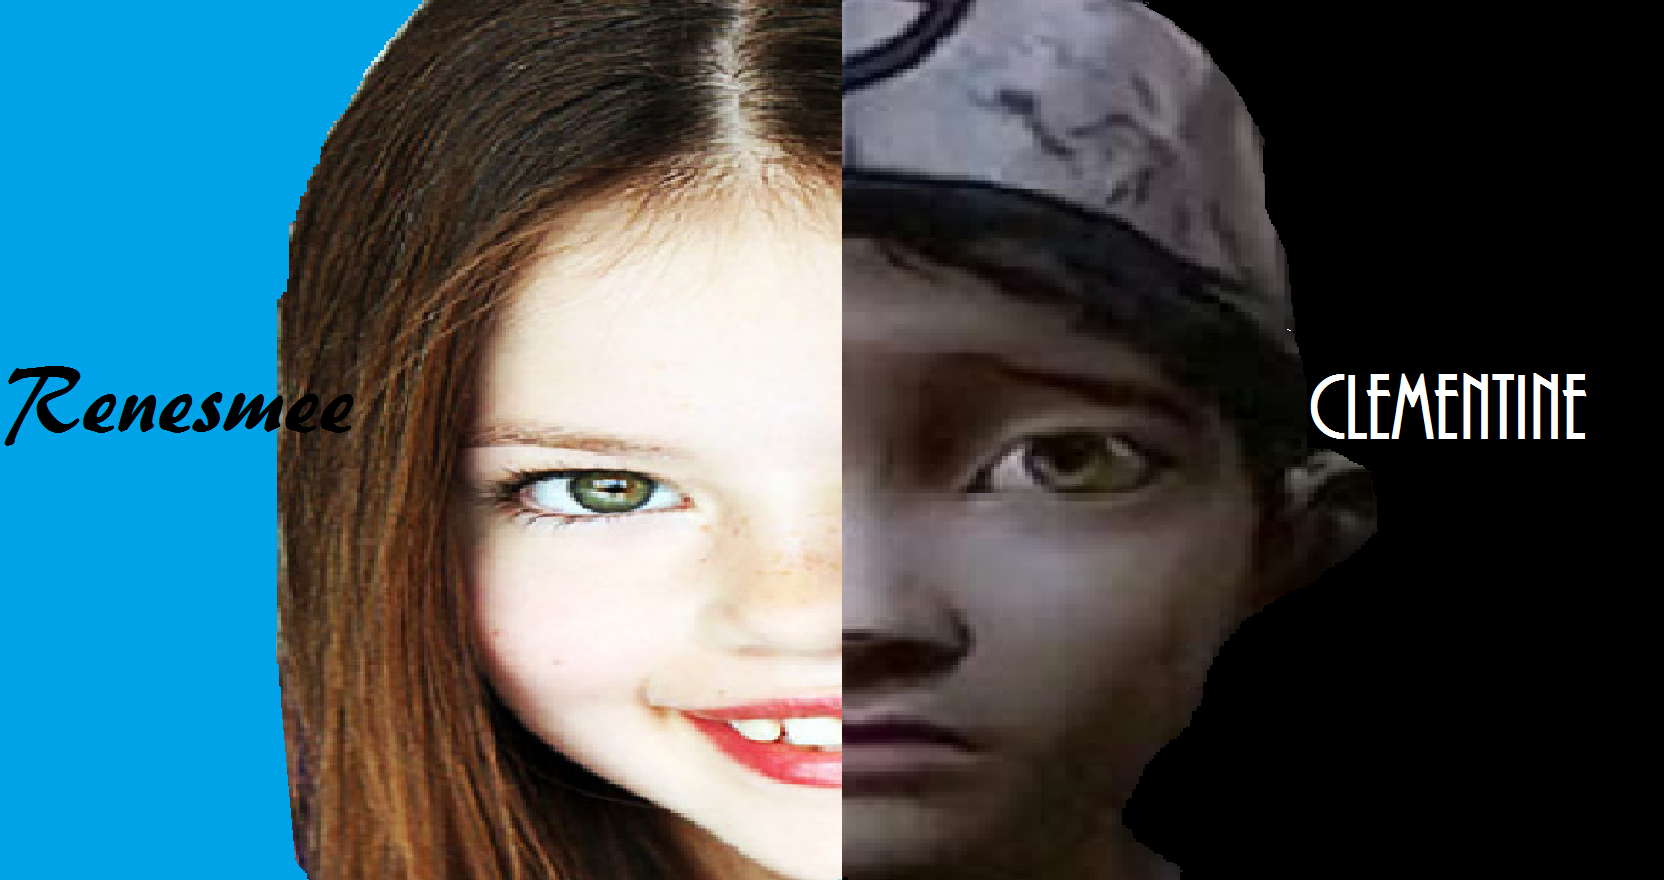 Clementine or Renesmee